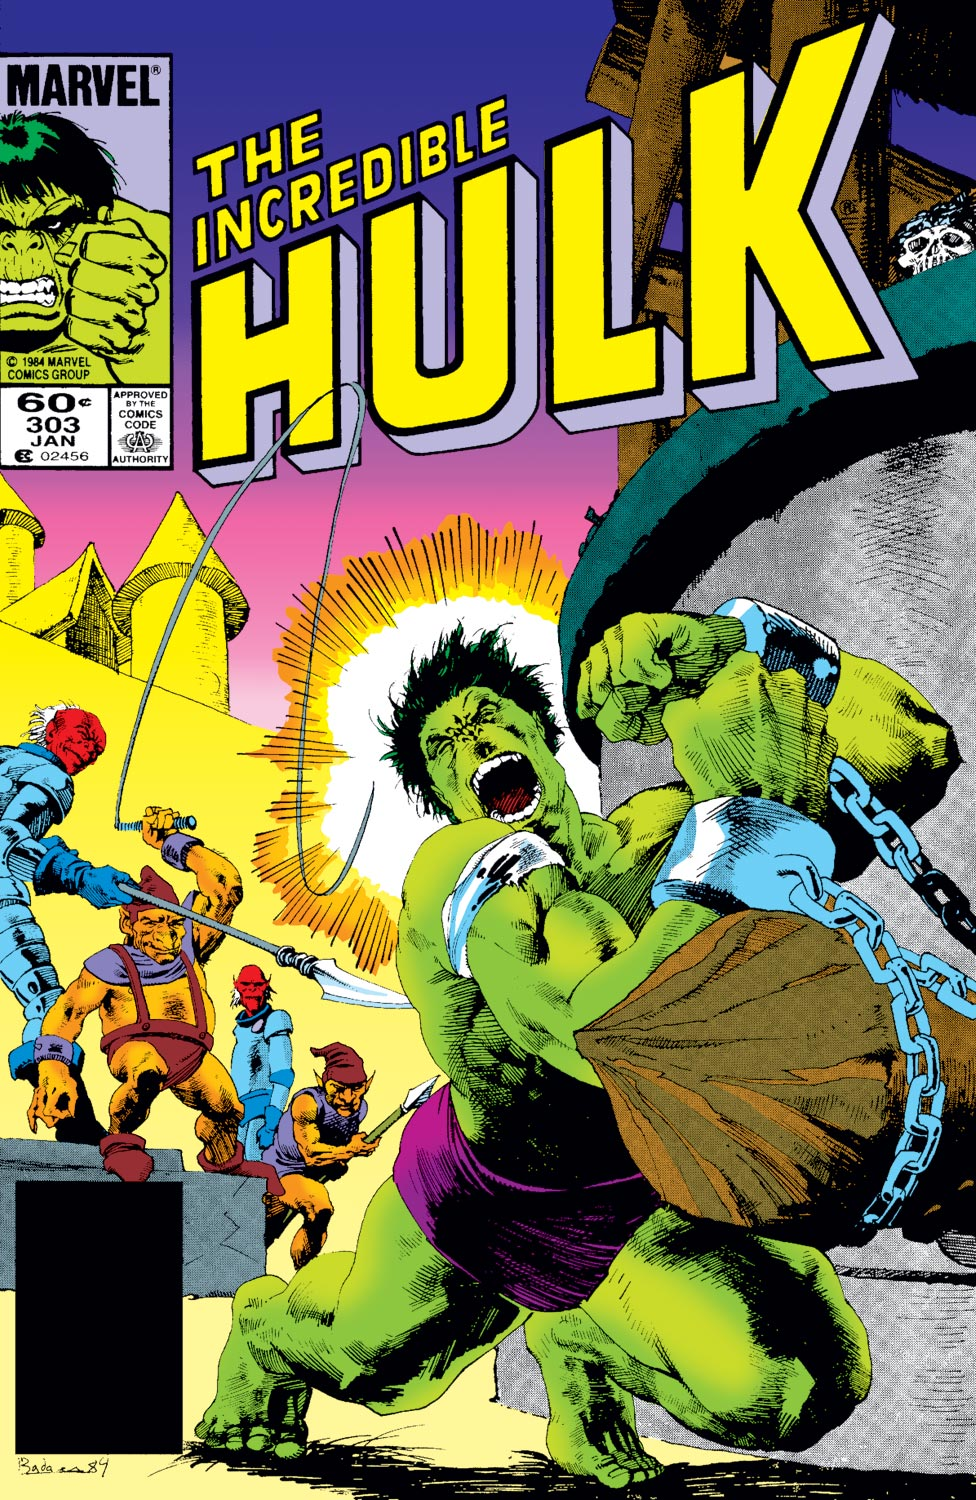 Incredible Hulk (1962) #303